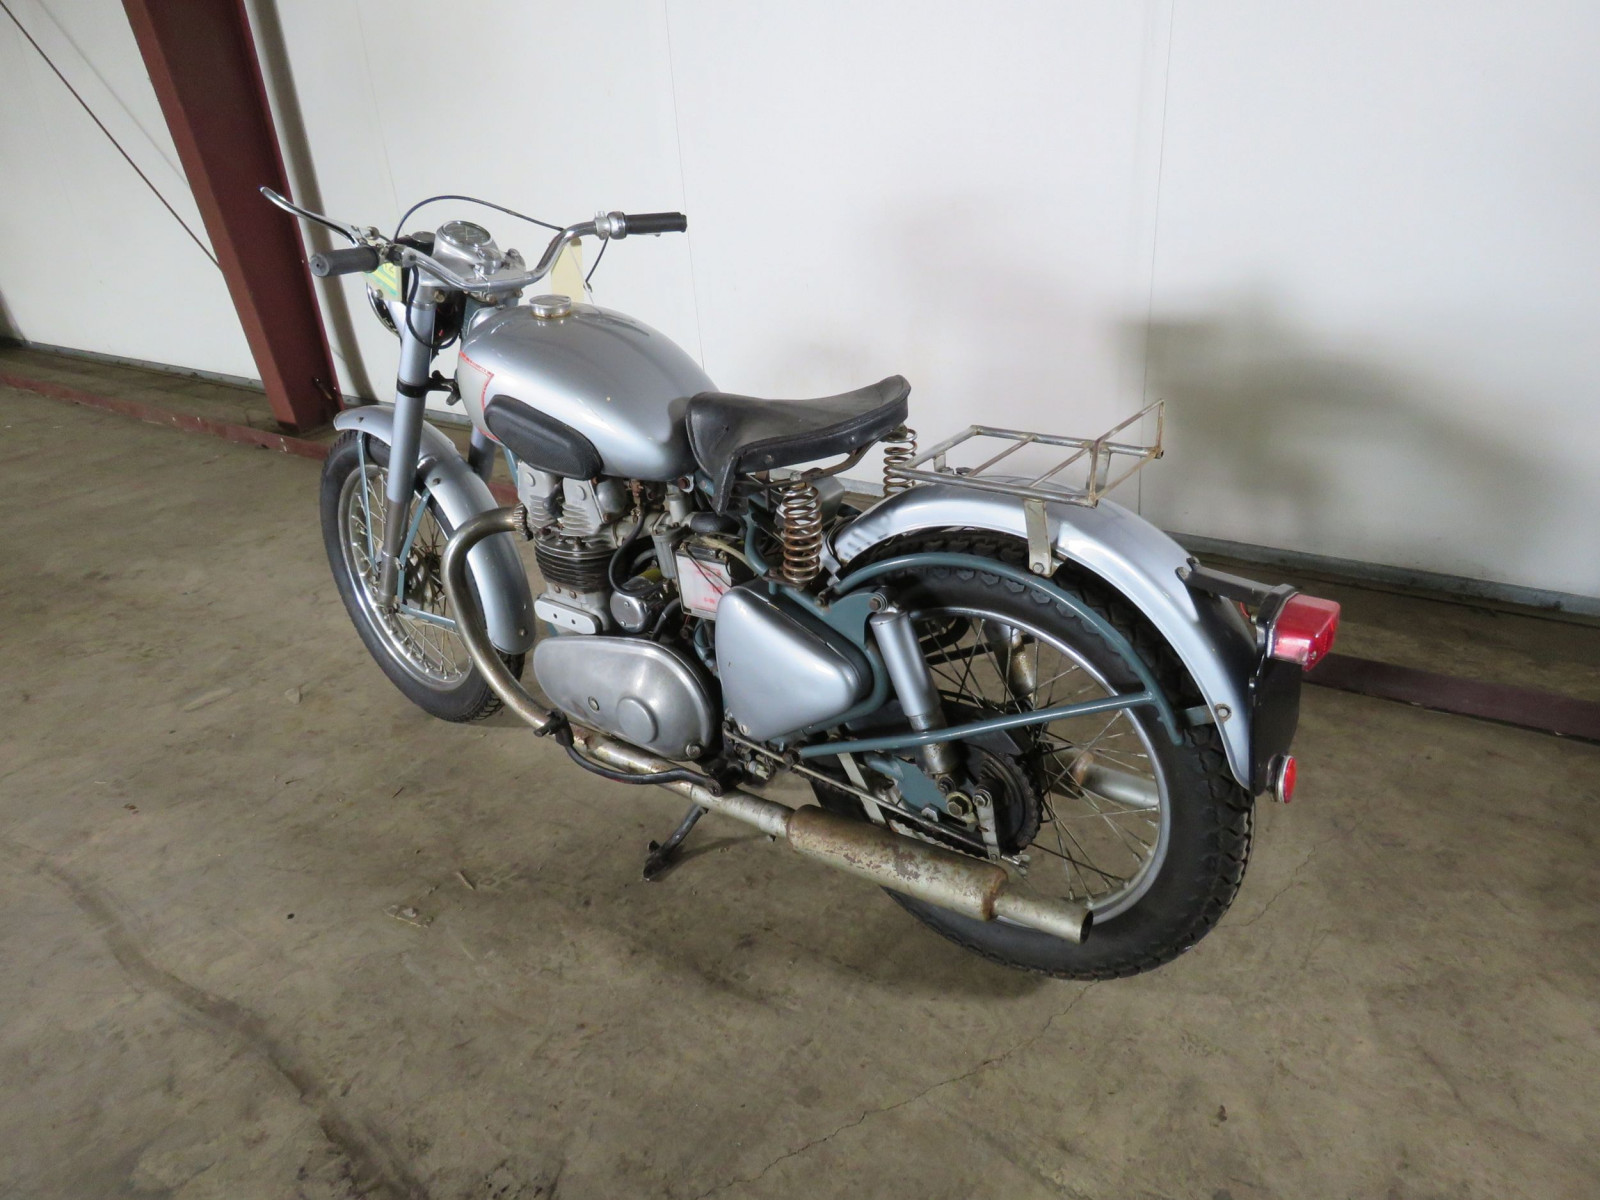 1952 Royal Enfield 500 Twin Motorcycle - Image 9